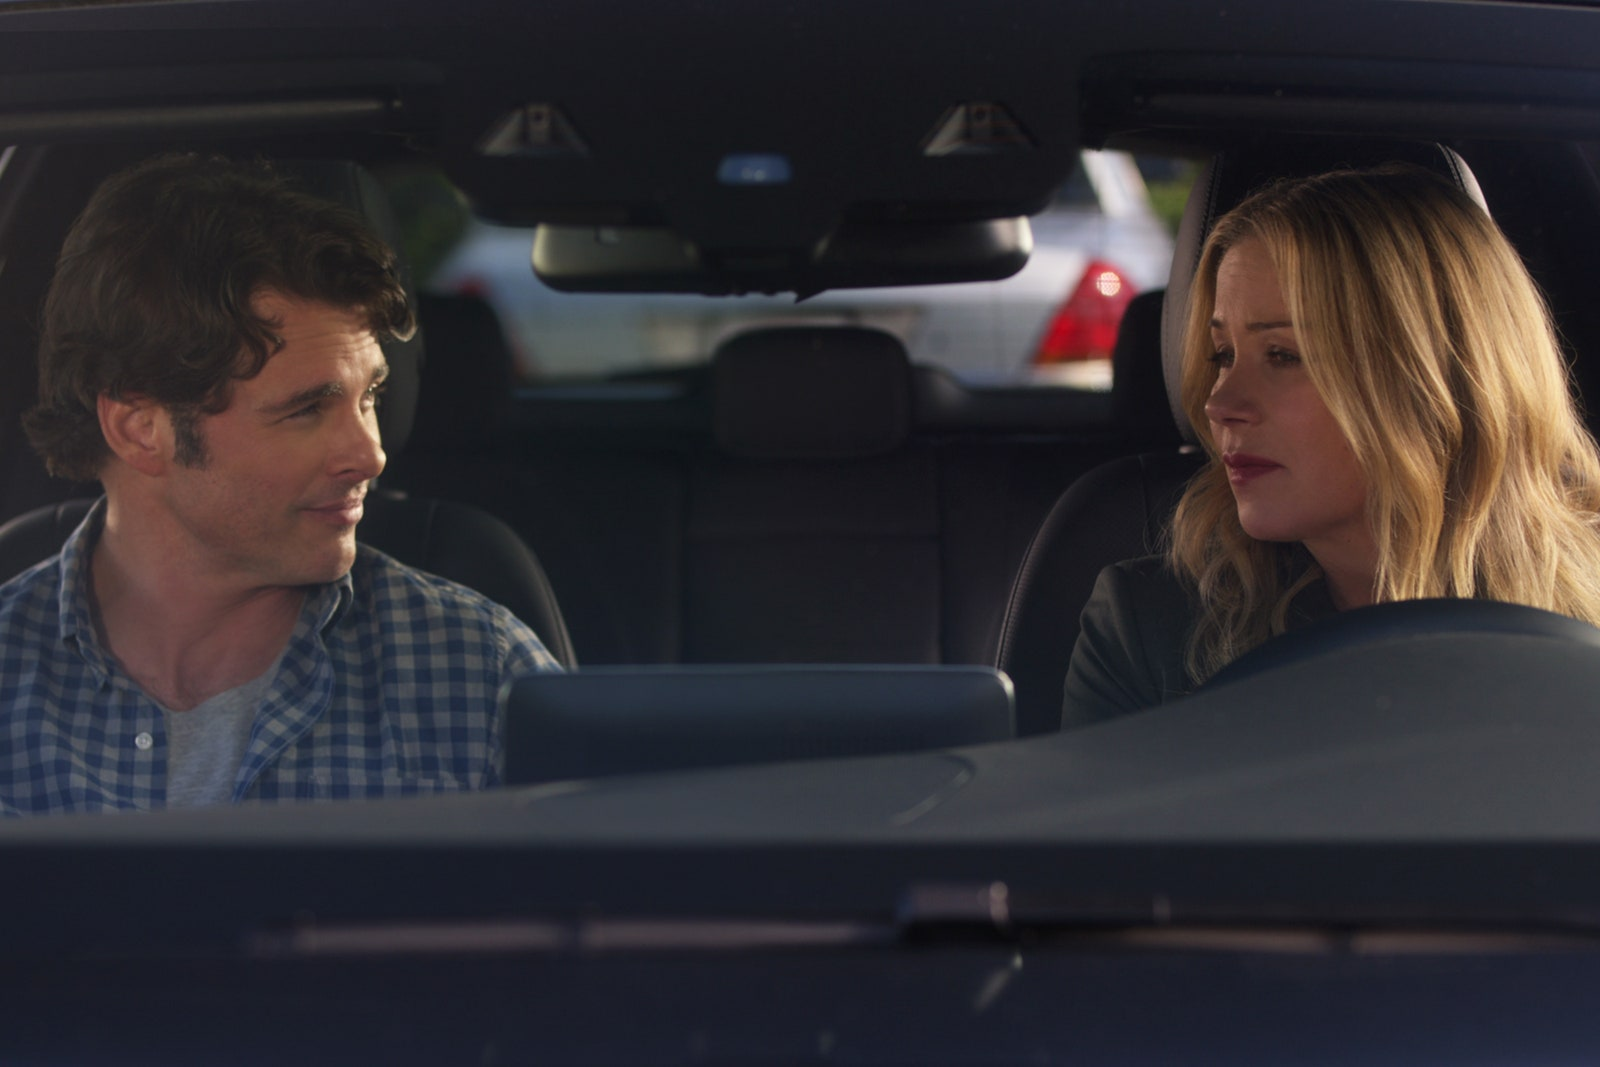 Jen and Ben in the car talking